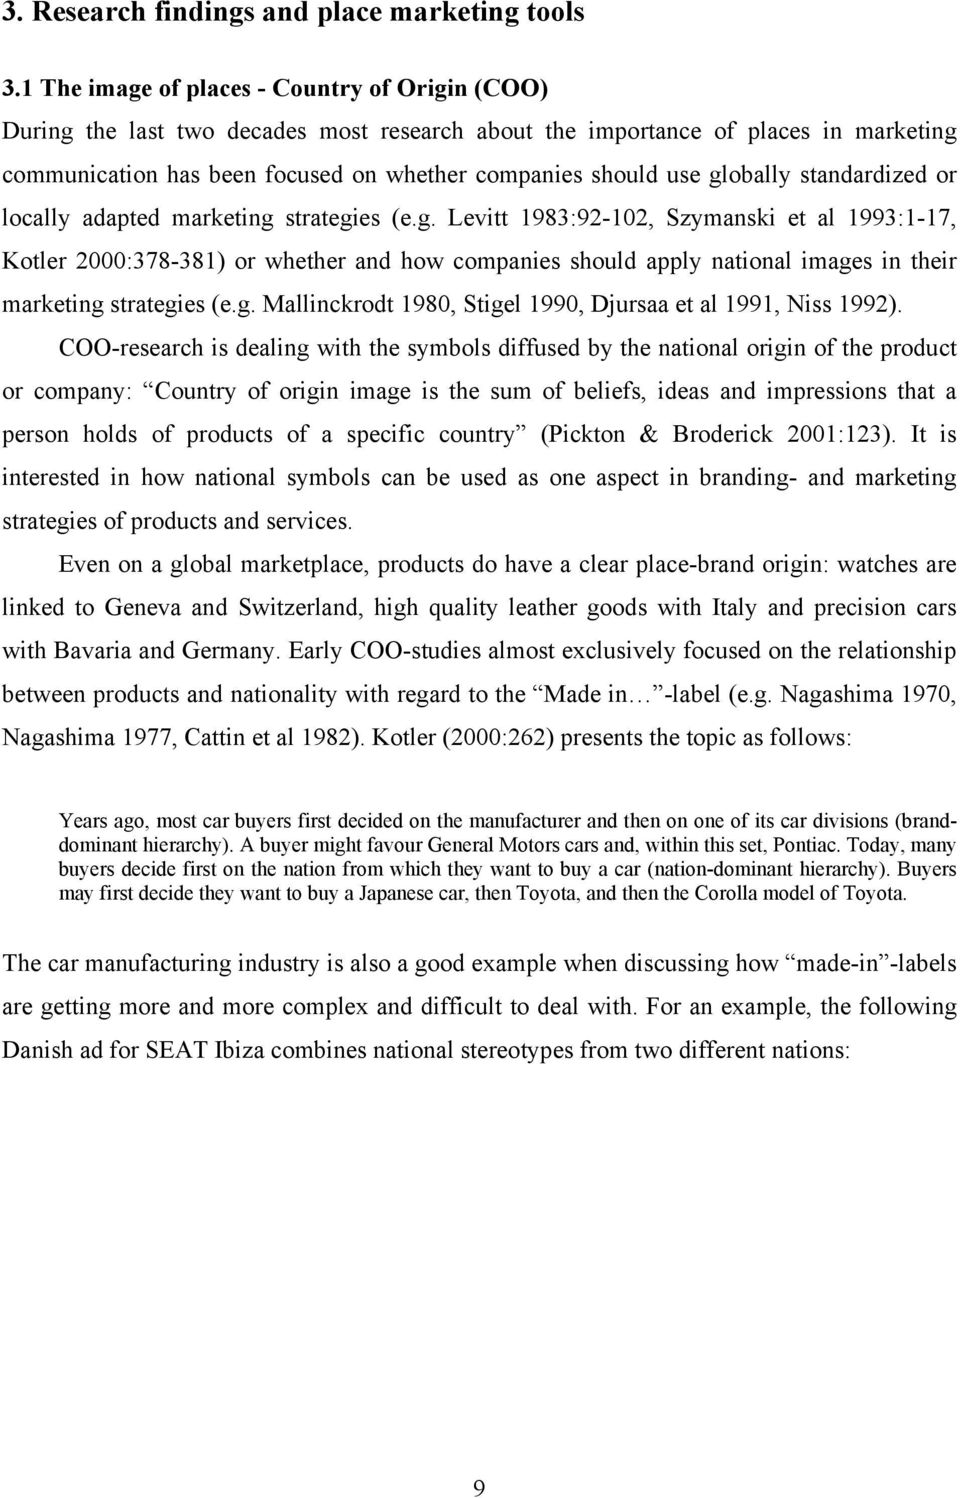 globally standardized or locally adapted marketing strategies (e.g. Levitt 1983:92-102, Szymanski et al 1993:1-17, Kotler 2000:378-381) or whether and how companies should apply national images in their marketing strategies (e.